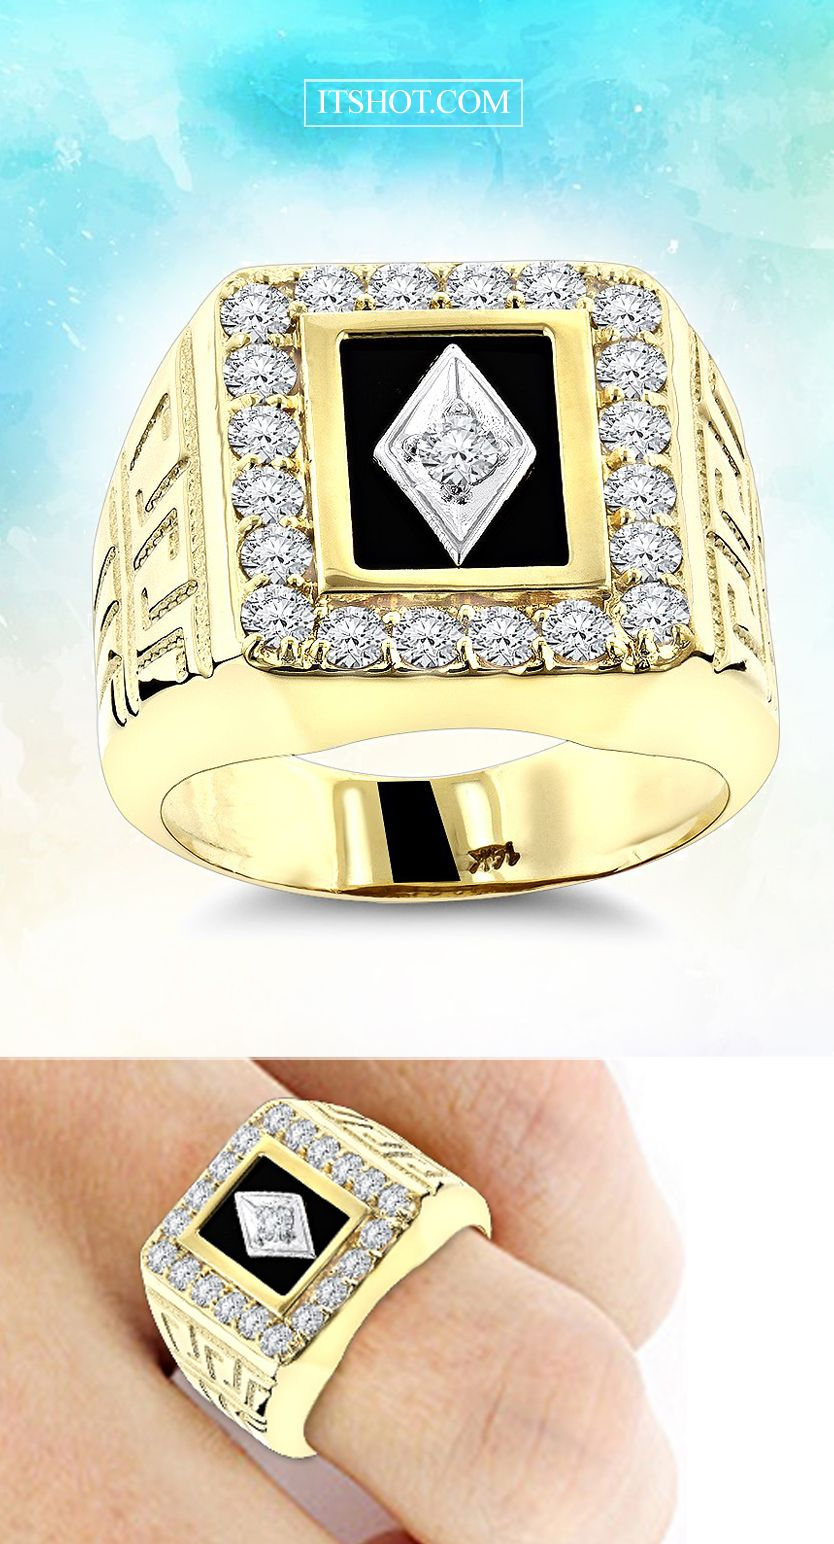 5f455cb40326d2 BLACK ONYX AND DIAMOND RINGS 14K GOLD MENS RING 1.68CT | If ItsHot ...